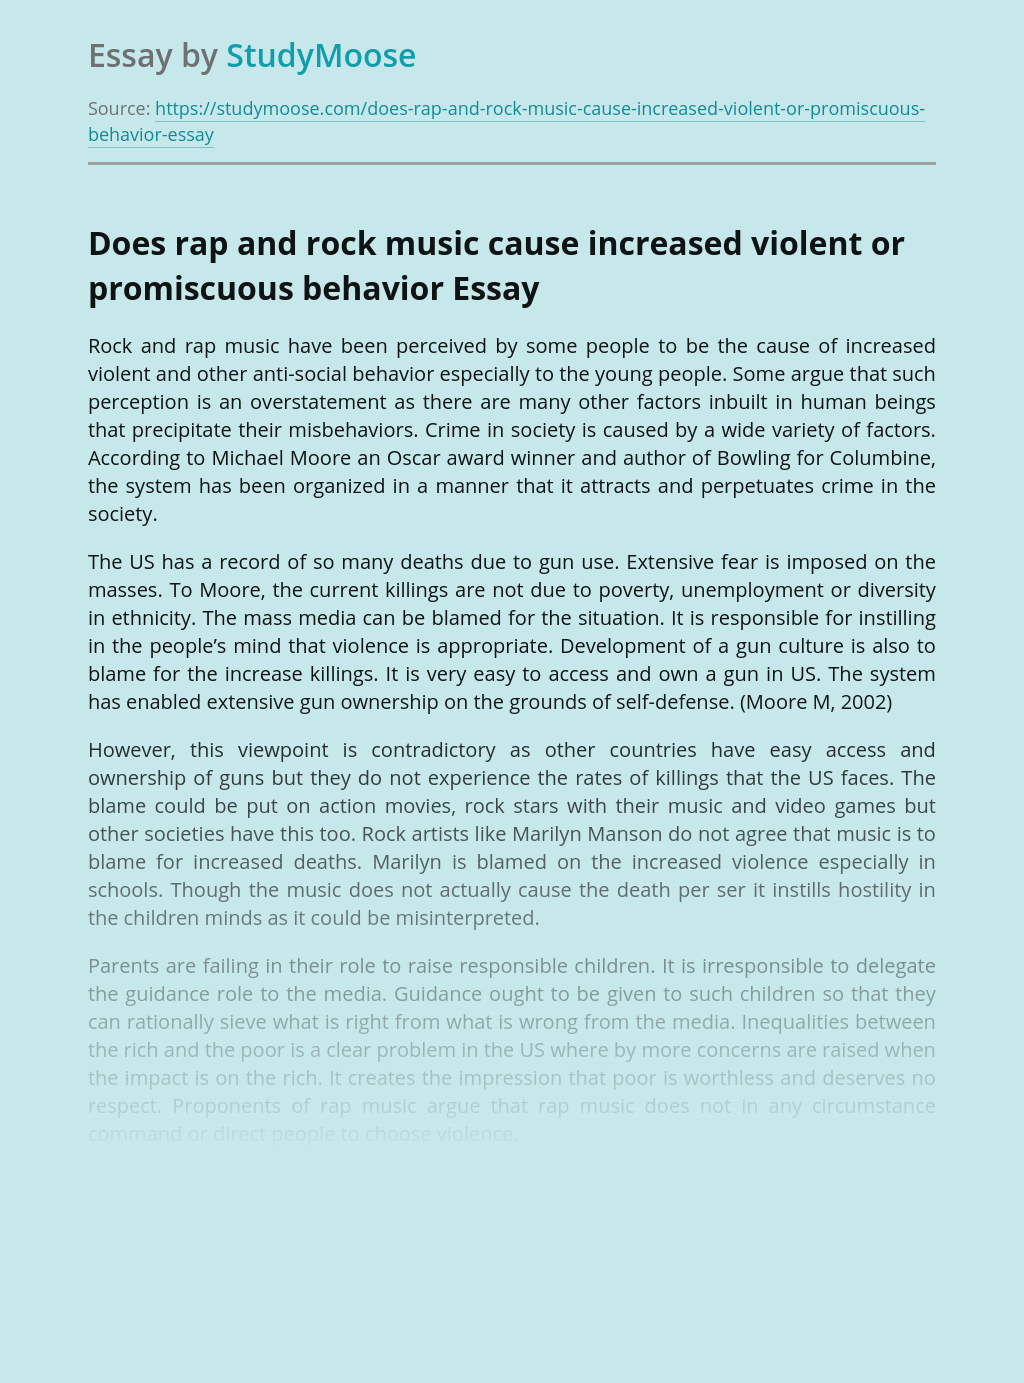 Does rap and rock music cause increased violent or promiscuous behavior